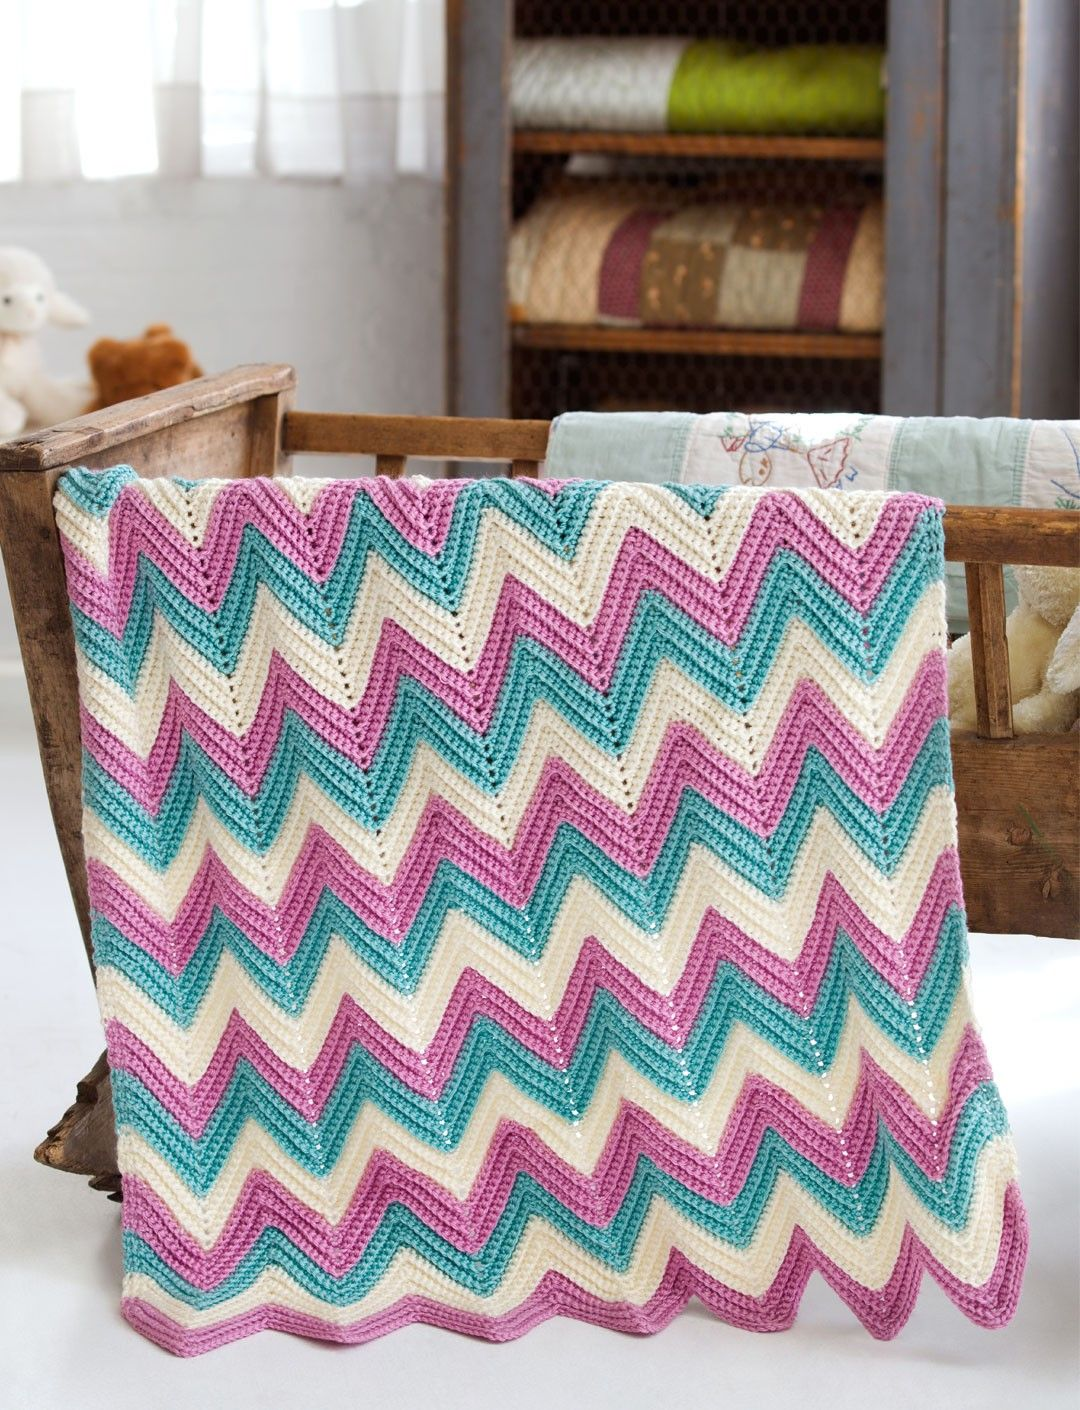 Zig Zag Crochet Blanket Pattern Interesting Design